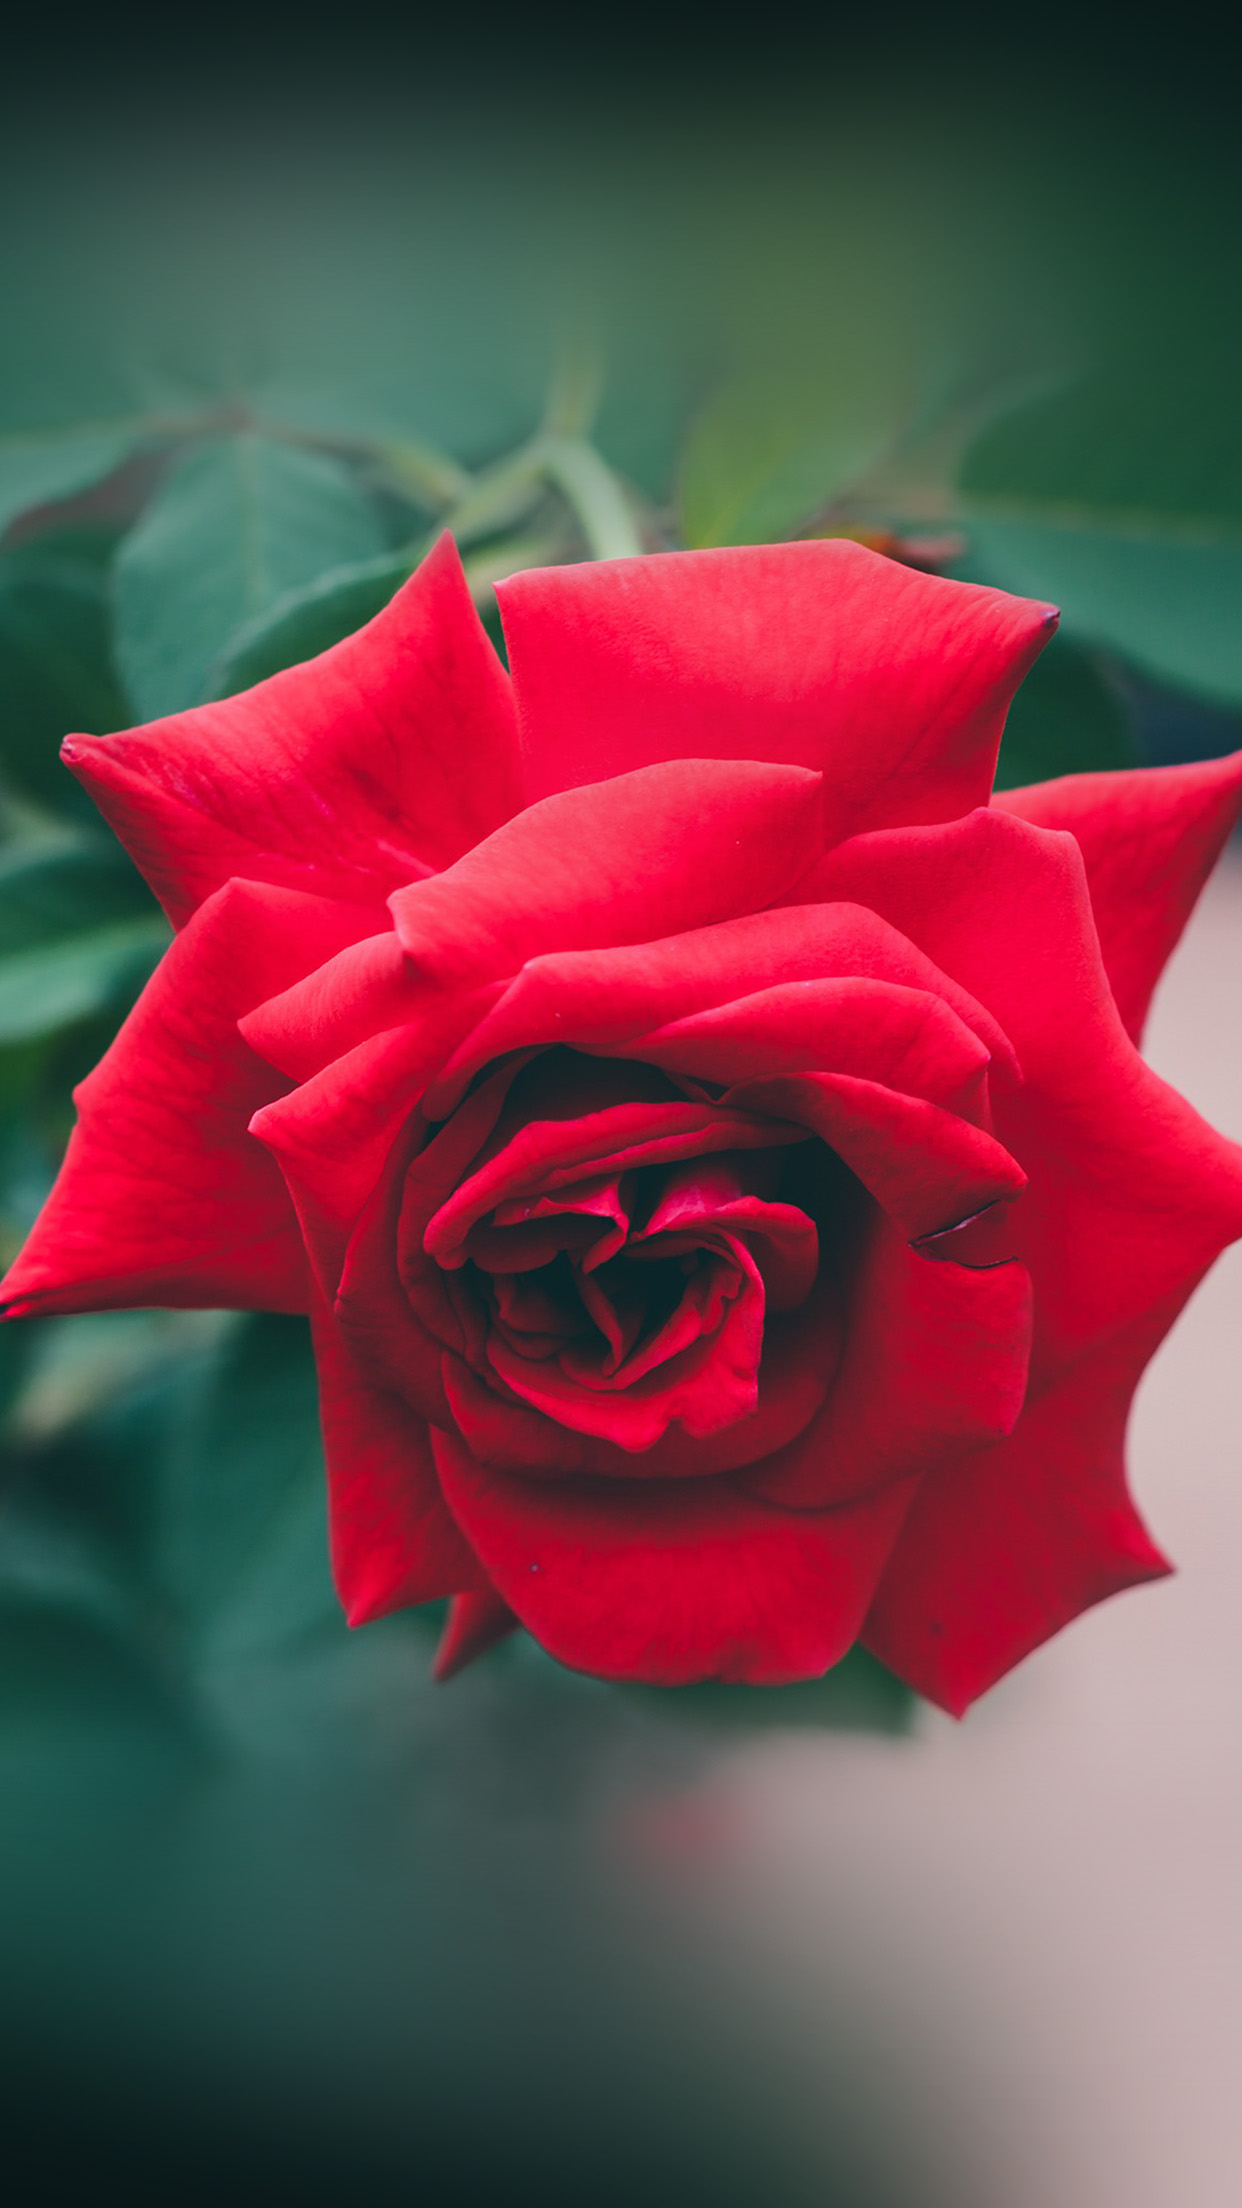 Iphone7papers Com Iphone7 Wallpaper My88 Red Rose Nature